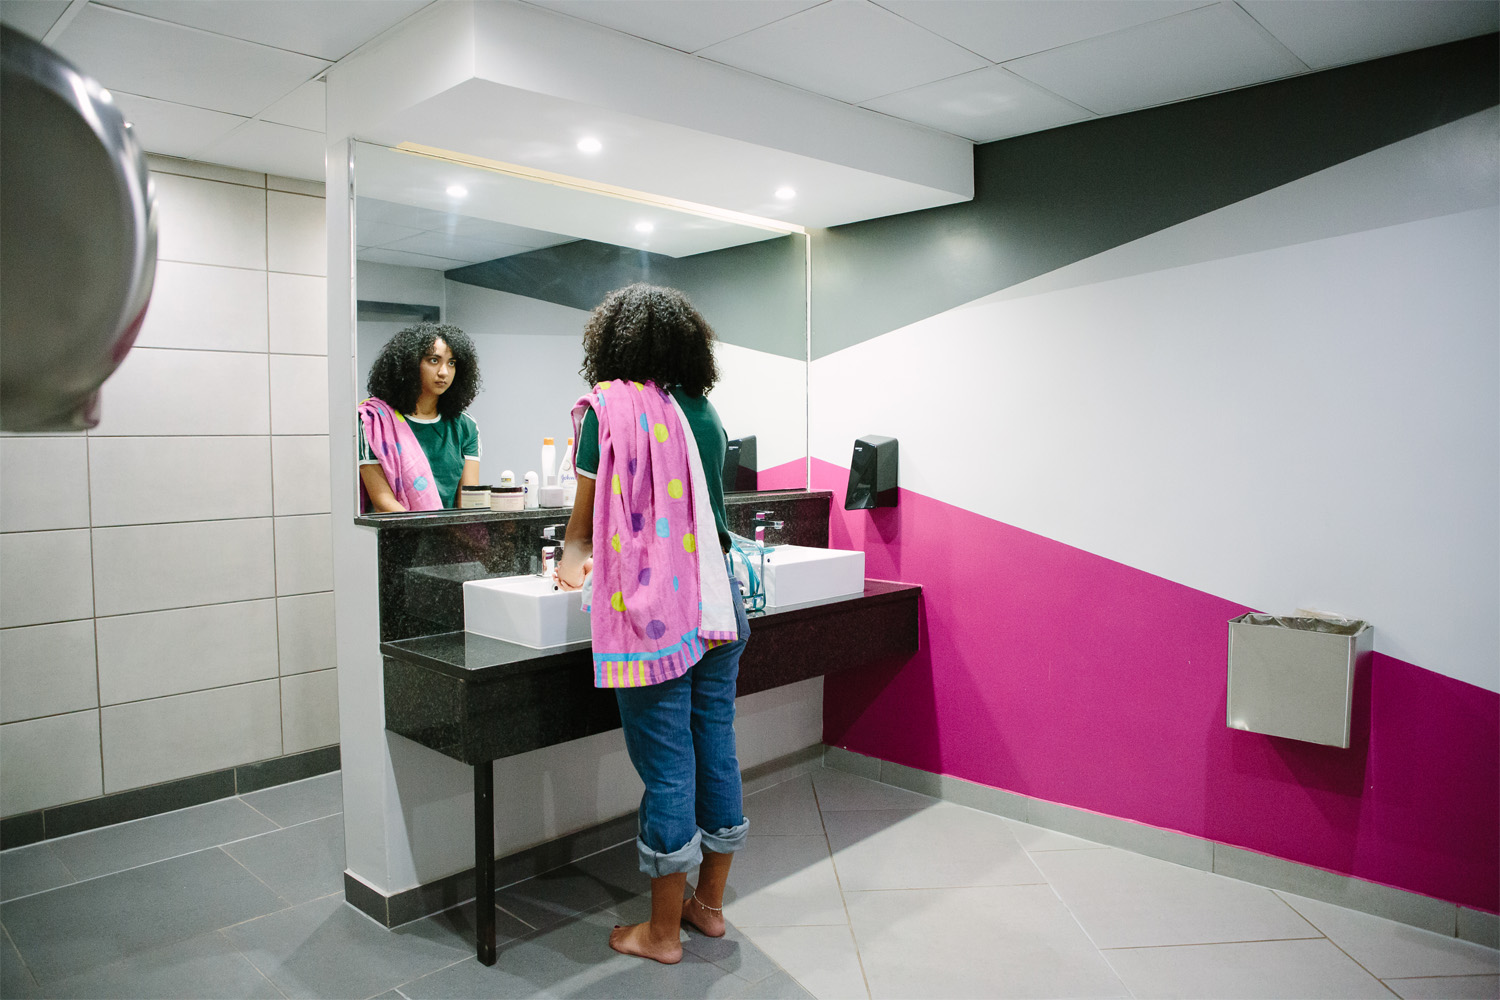 Hatfield_Square_Bathroom